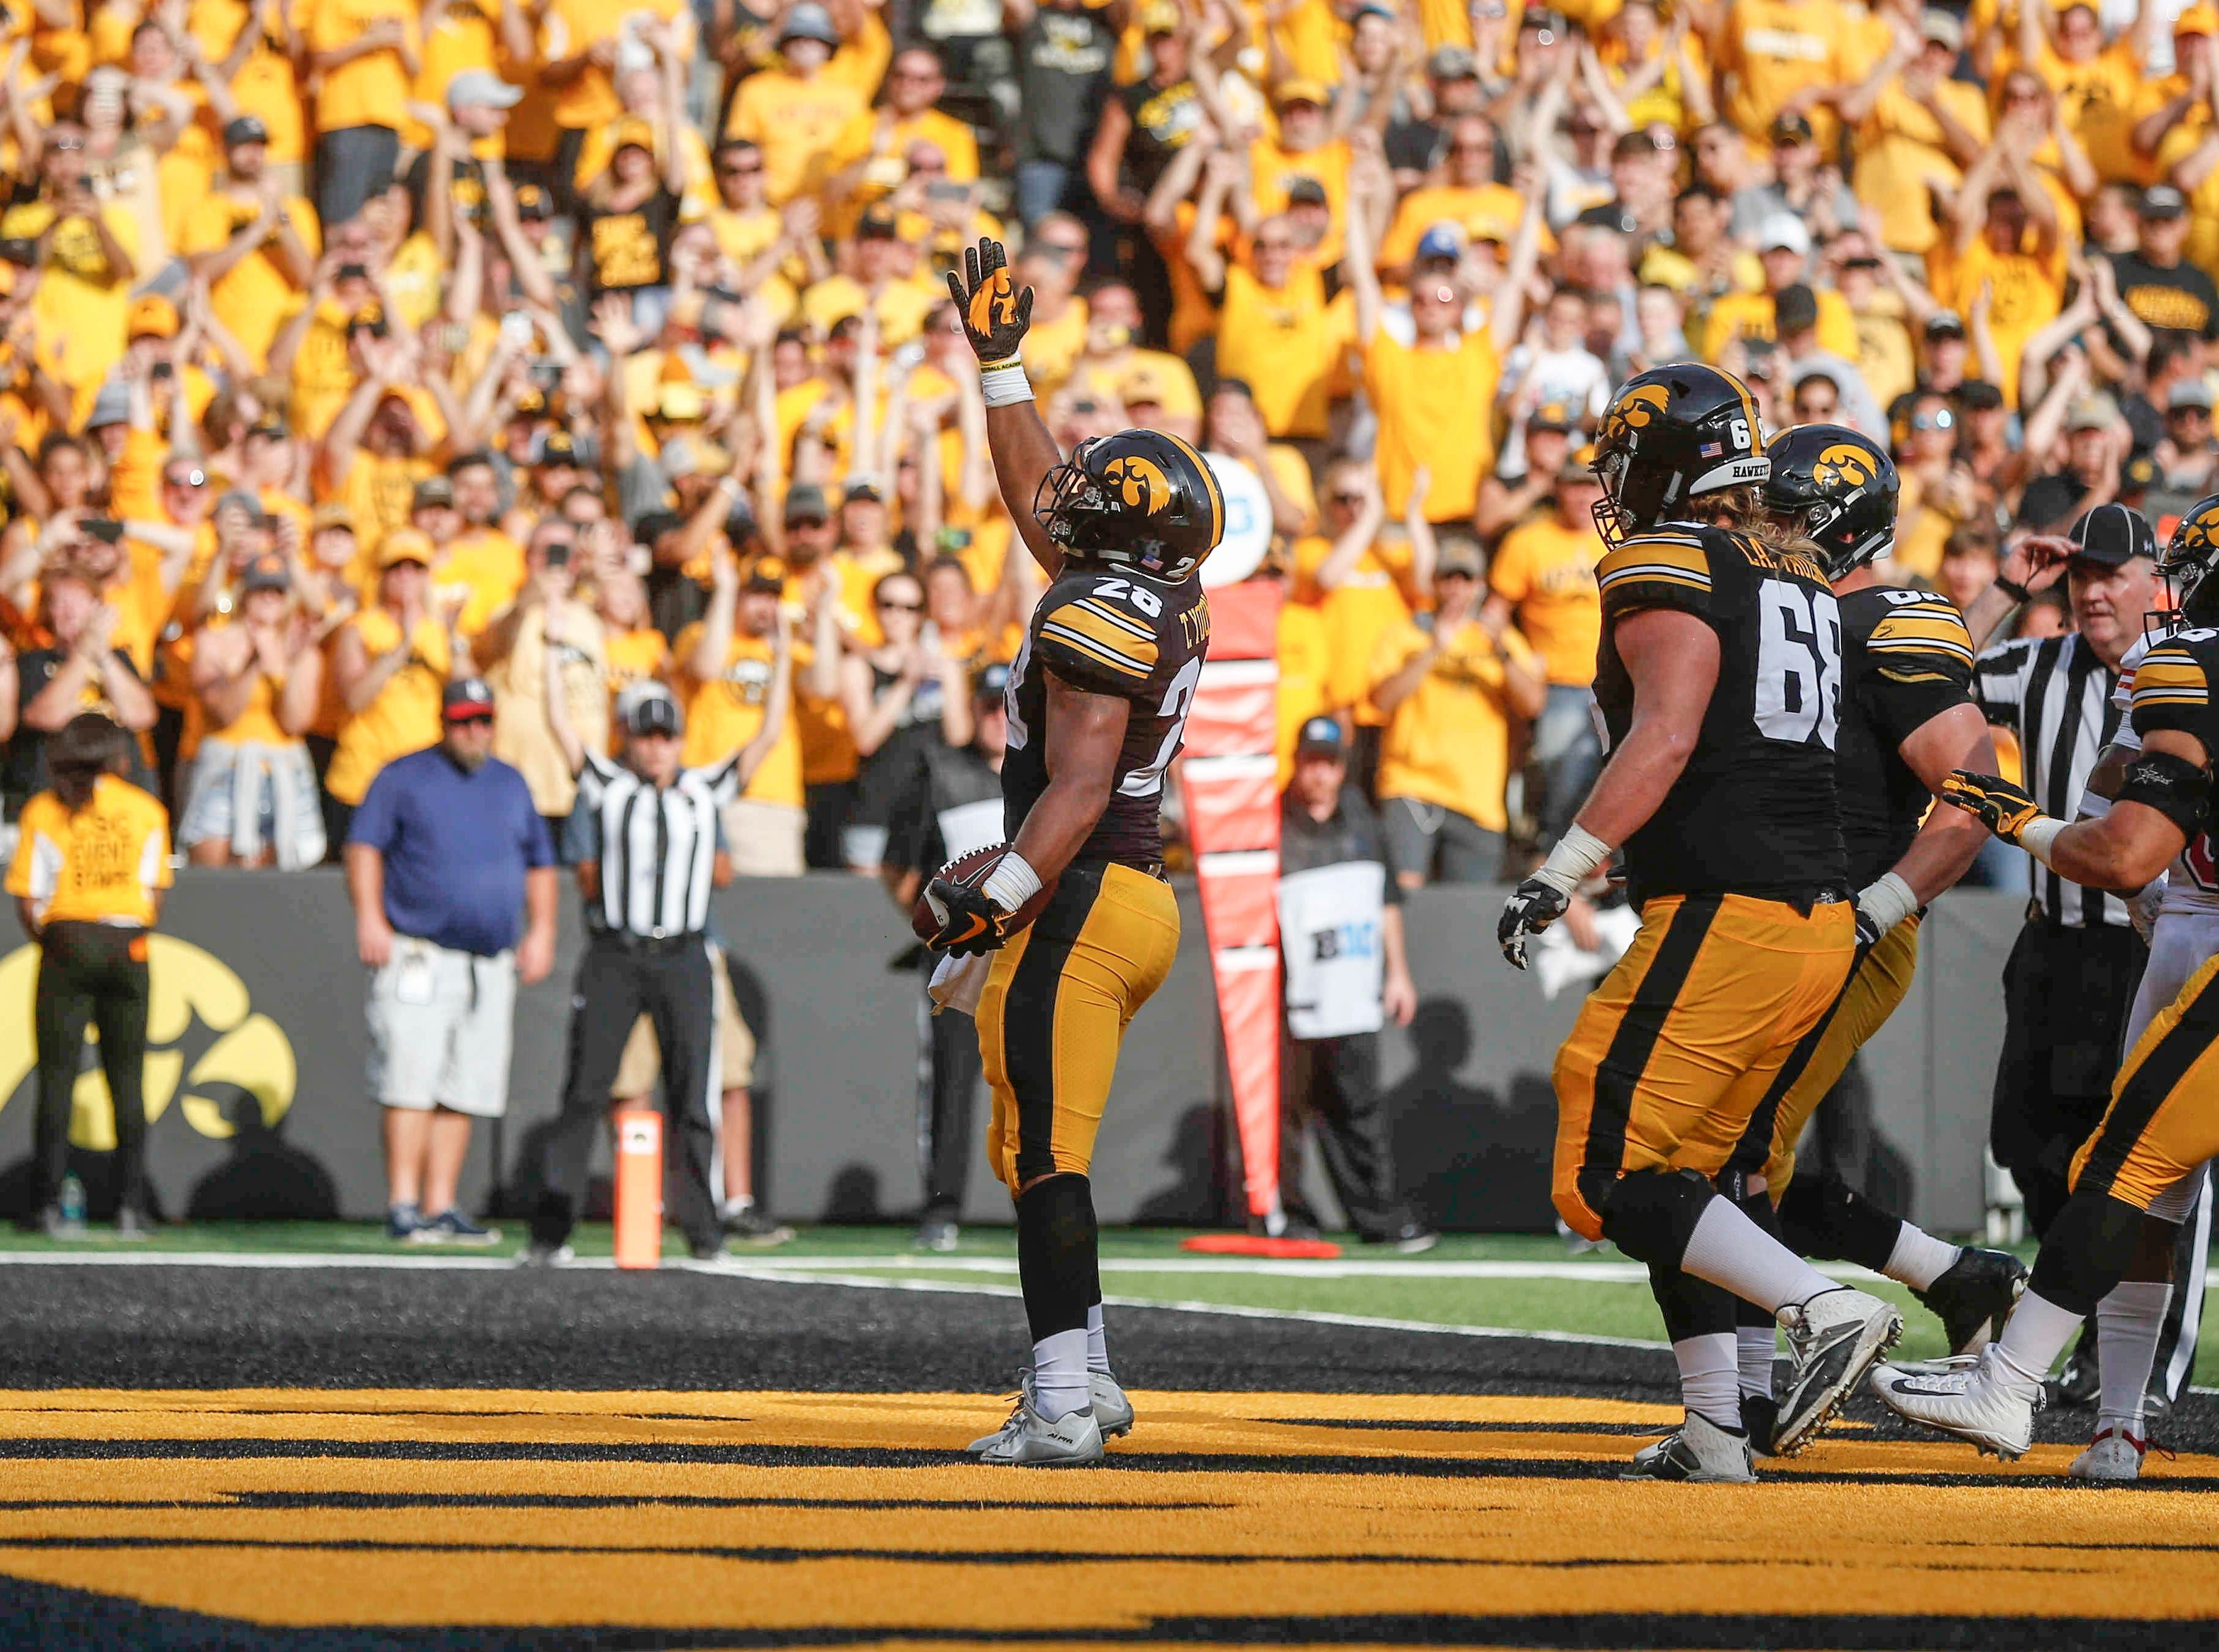 Iowa sophomore Toren Young celebrates after scoring a touchdown against Northern Illinois on Saturday, Sept. 1, 2018, at Kinnick Stadium in Iowa City.